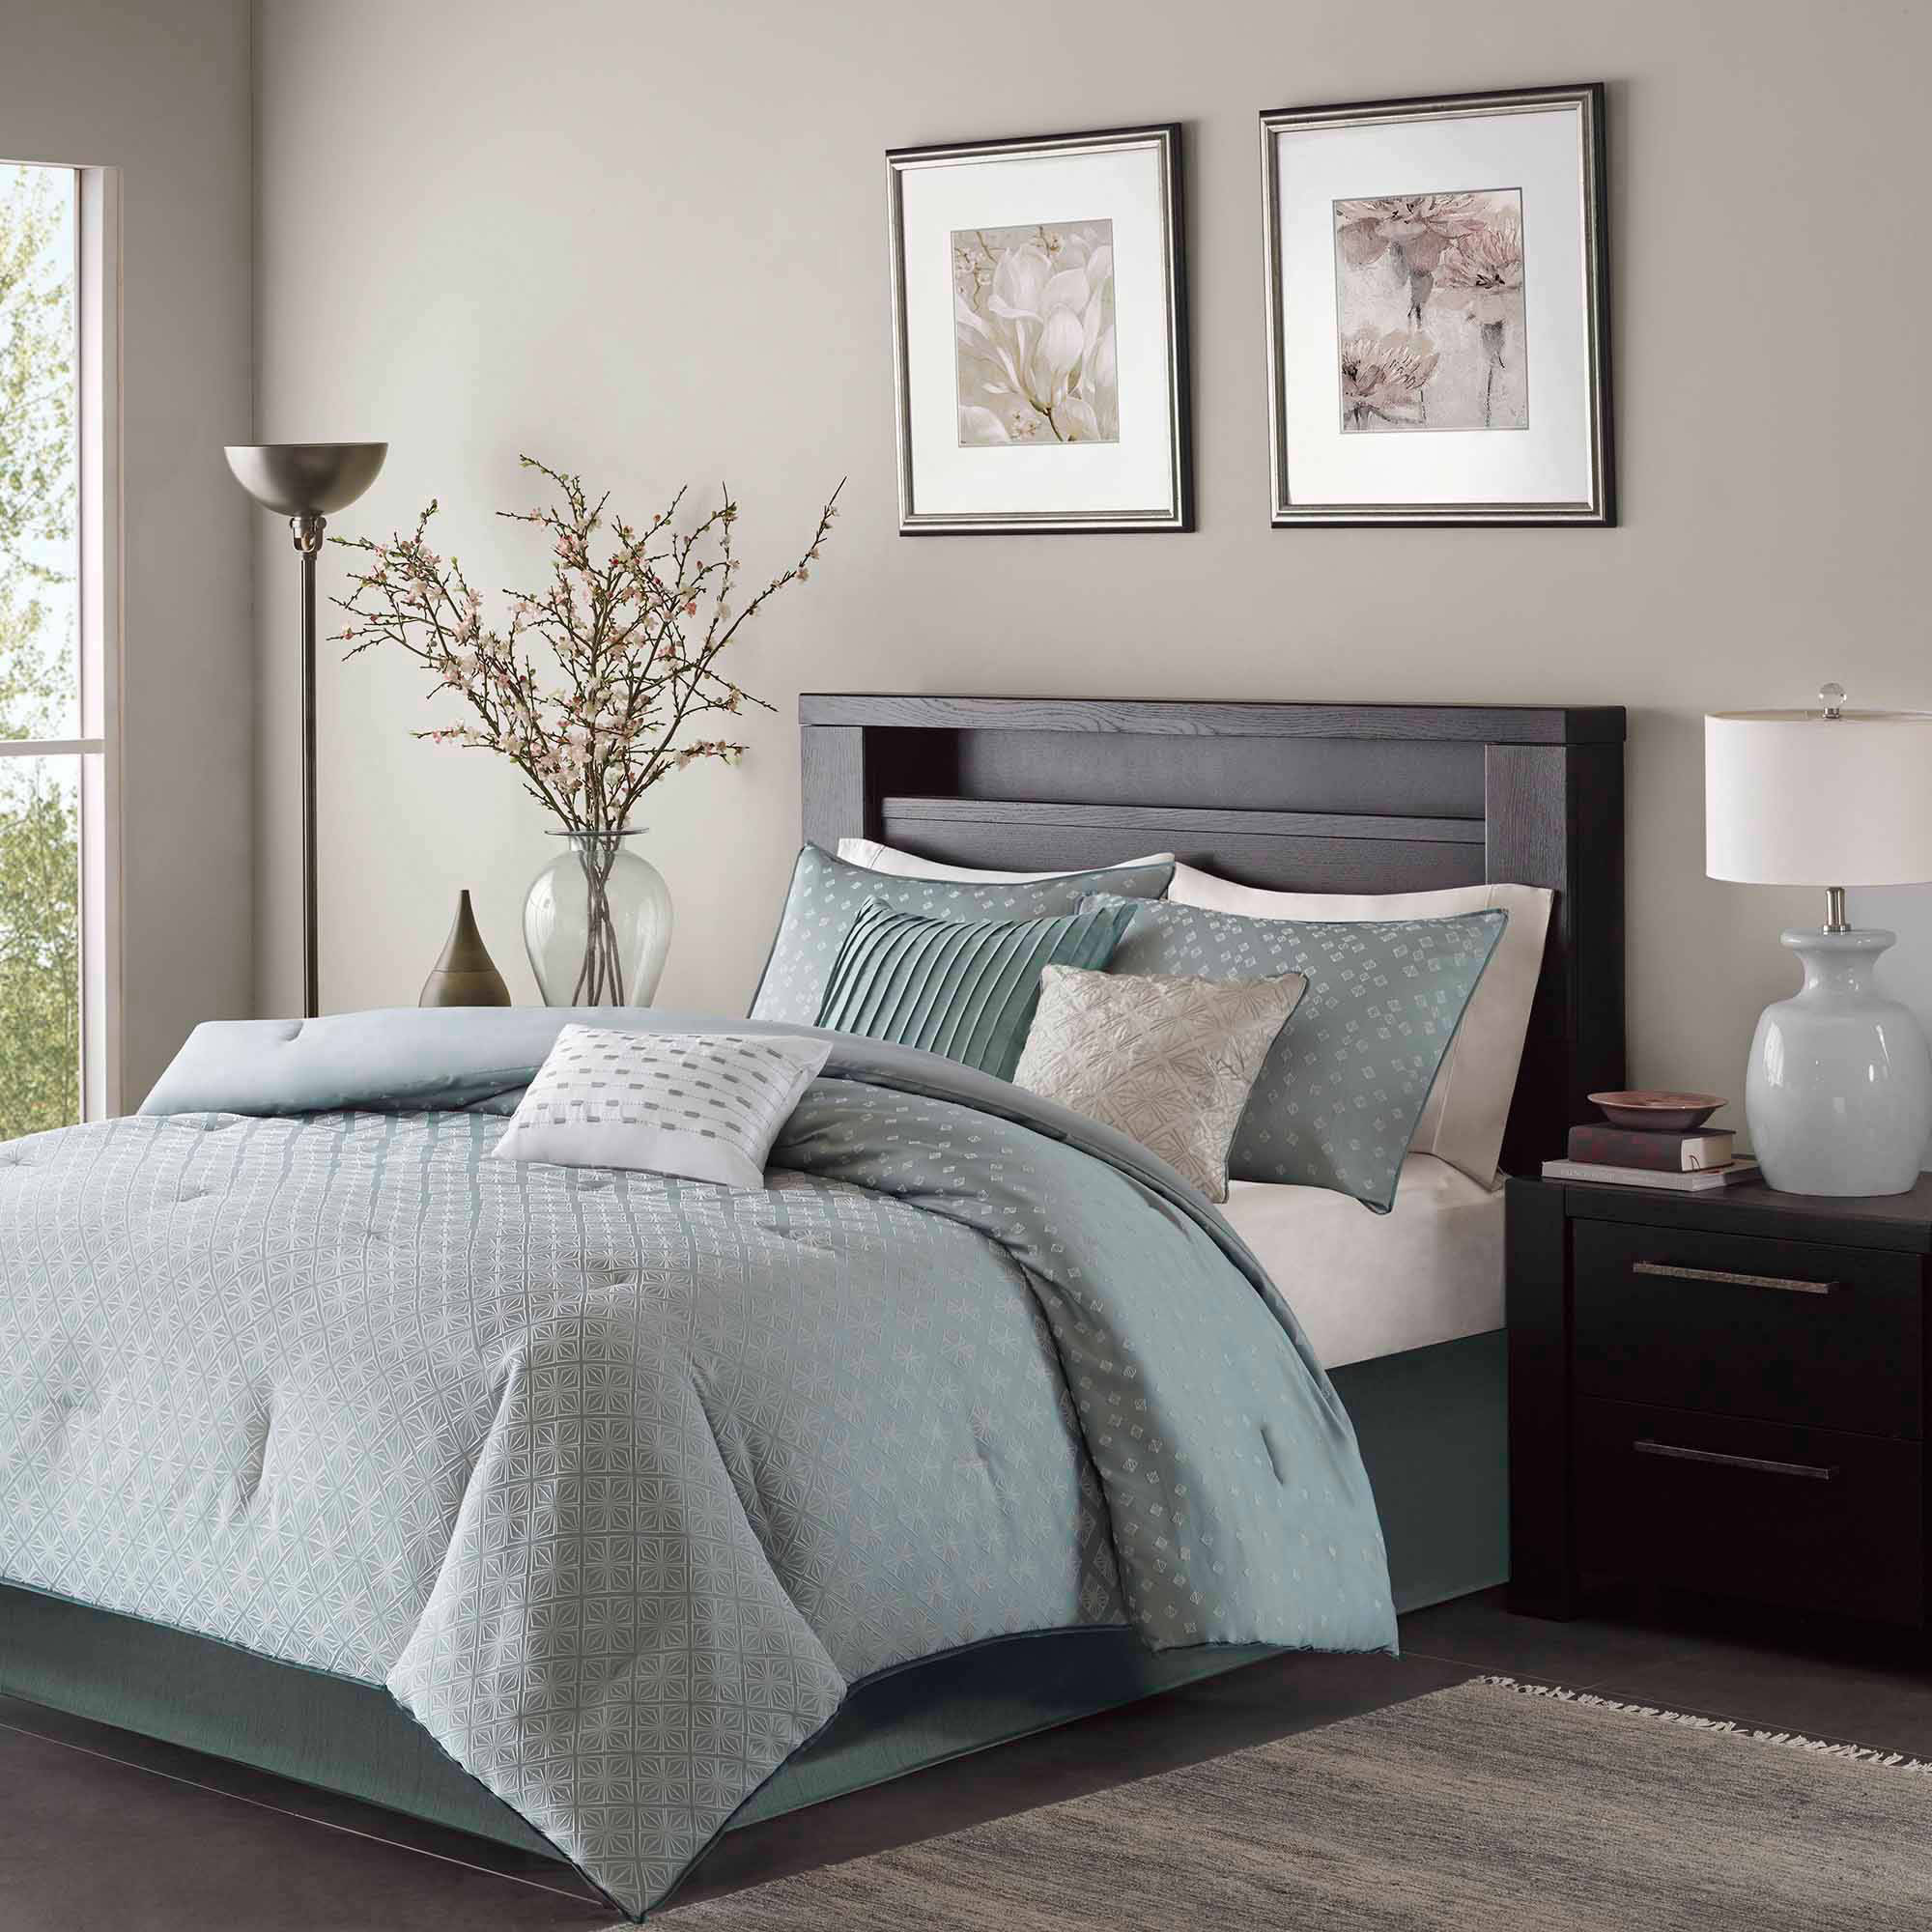 bedding teal for set cover king royal queen size california with pretty grey cal light blue green bed beautiful image plaid lime turquoise doona duvet quilt collection sara mens flannel full by designer of yhst hotel comforter duvets bedspread and white covers sets